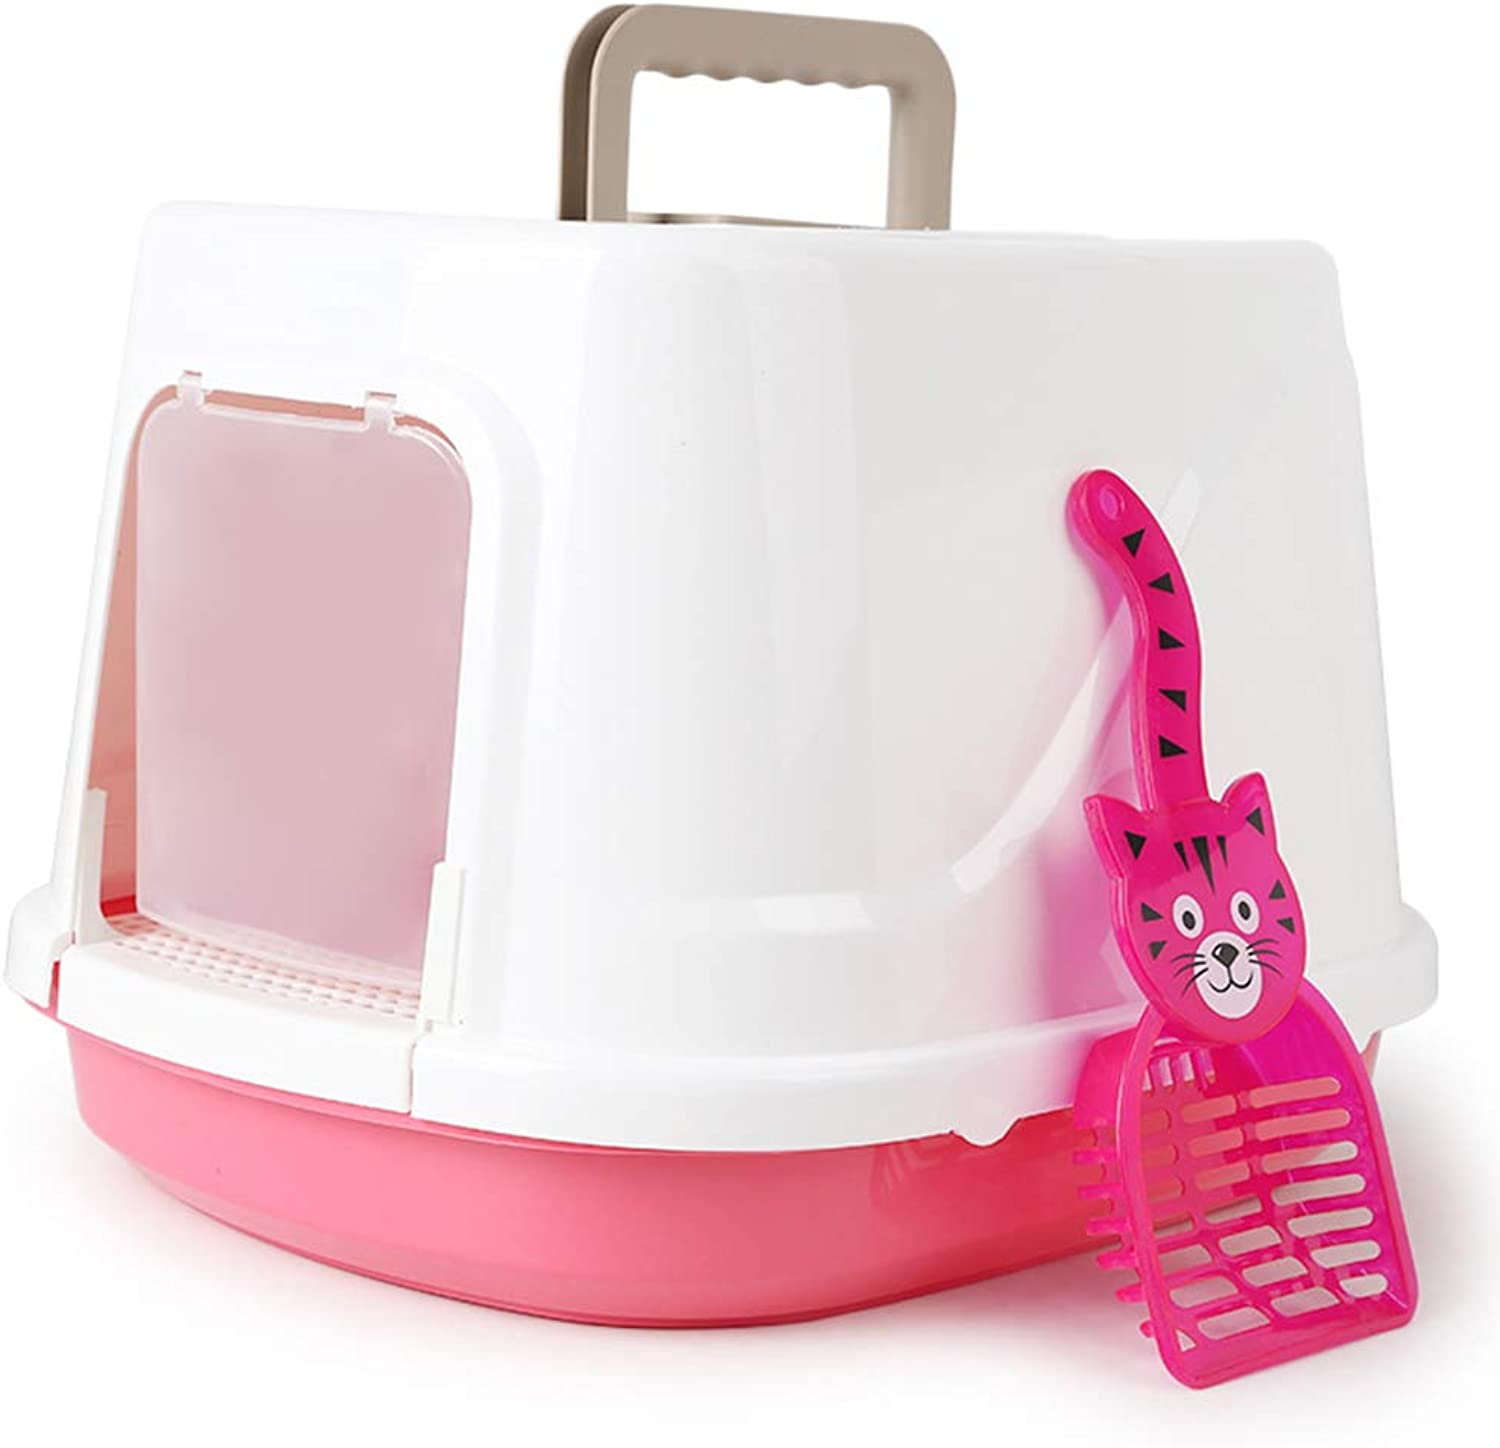 Fully Enclosed Cat Litter Box, AntiSplashing Large Cat Litter Cat Toilet, Cat Litter Box con Lid, Pink